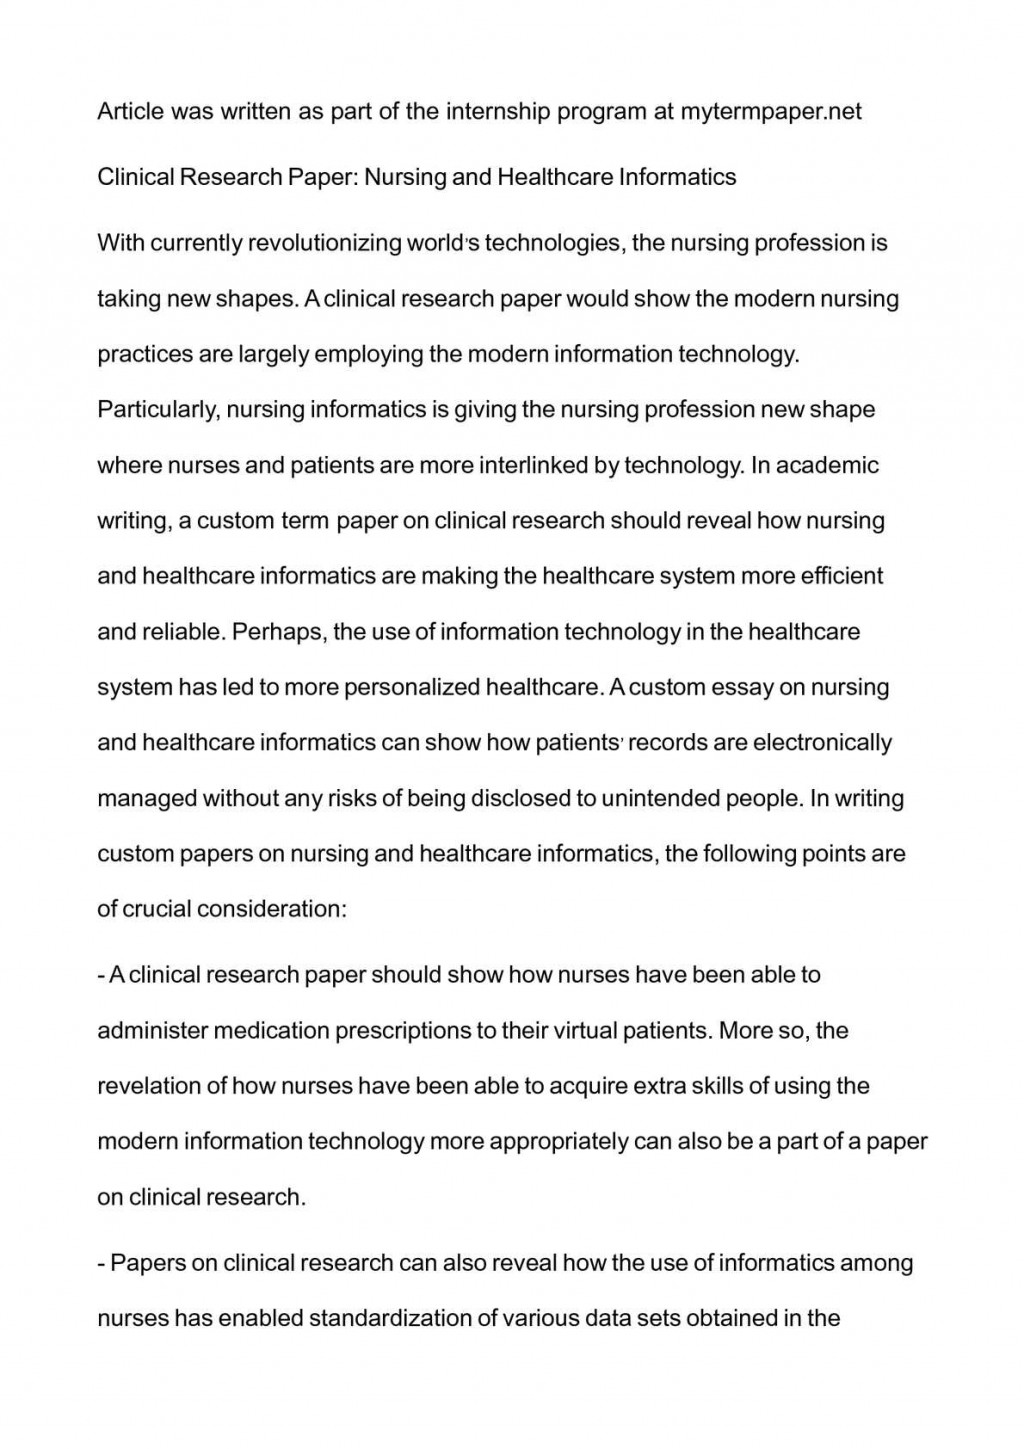 002 P1 Research Paper About Unforgettable Nursing Topics On Home Abuse And Neglect Shortage Large